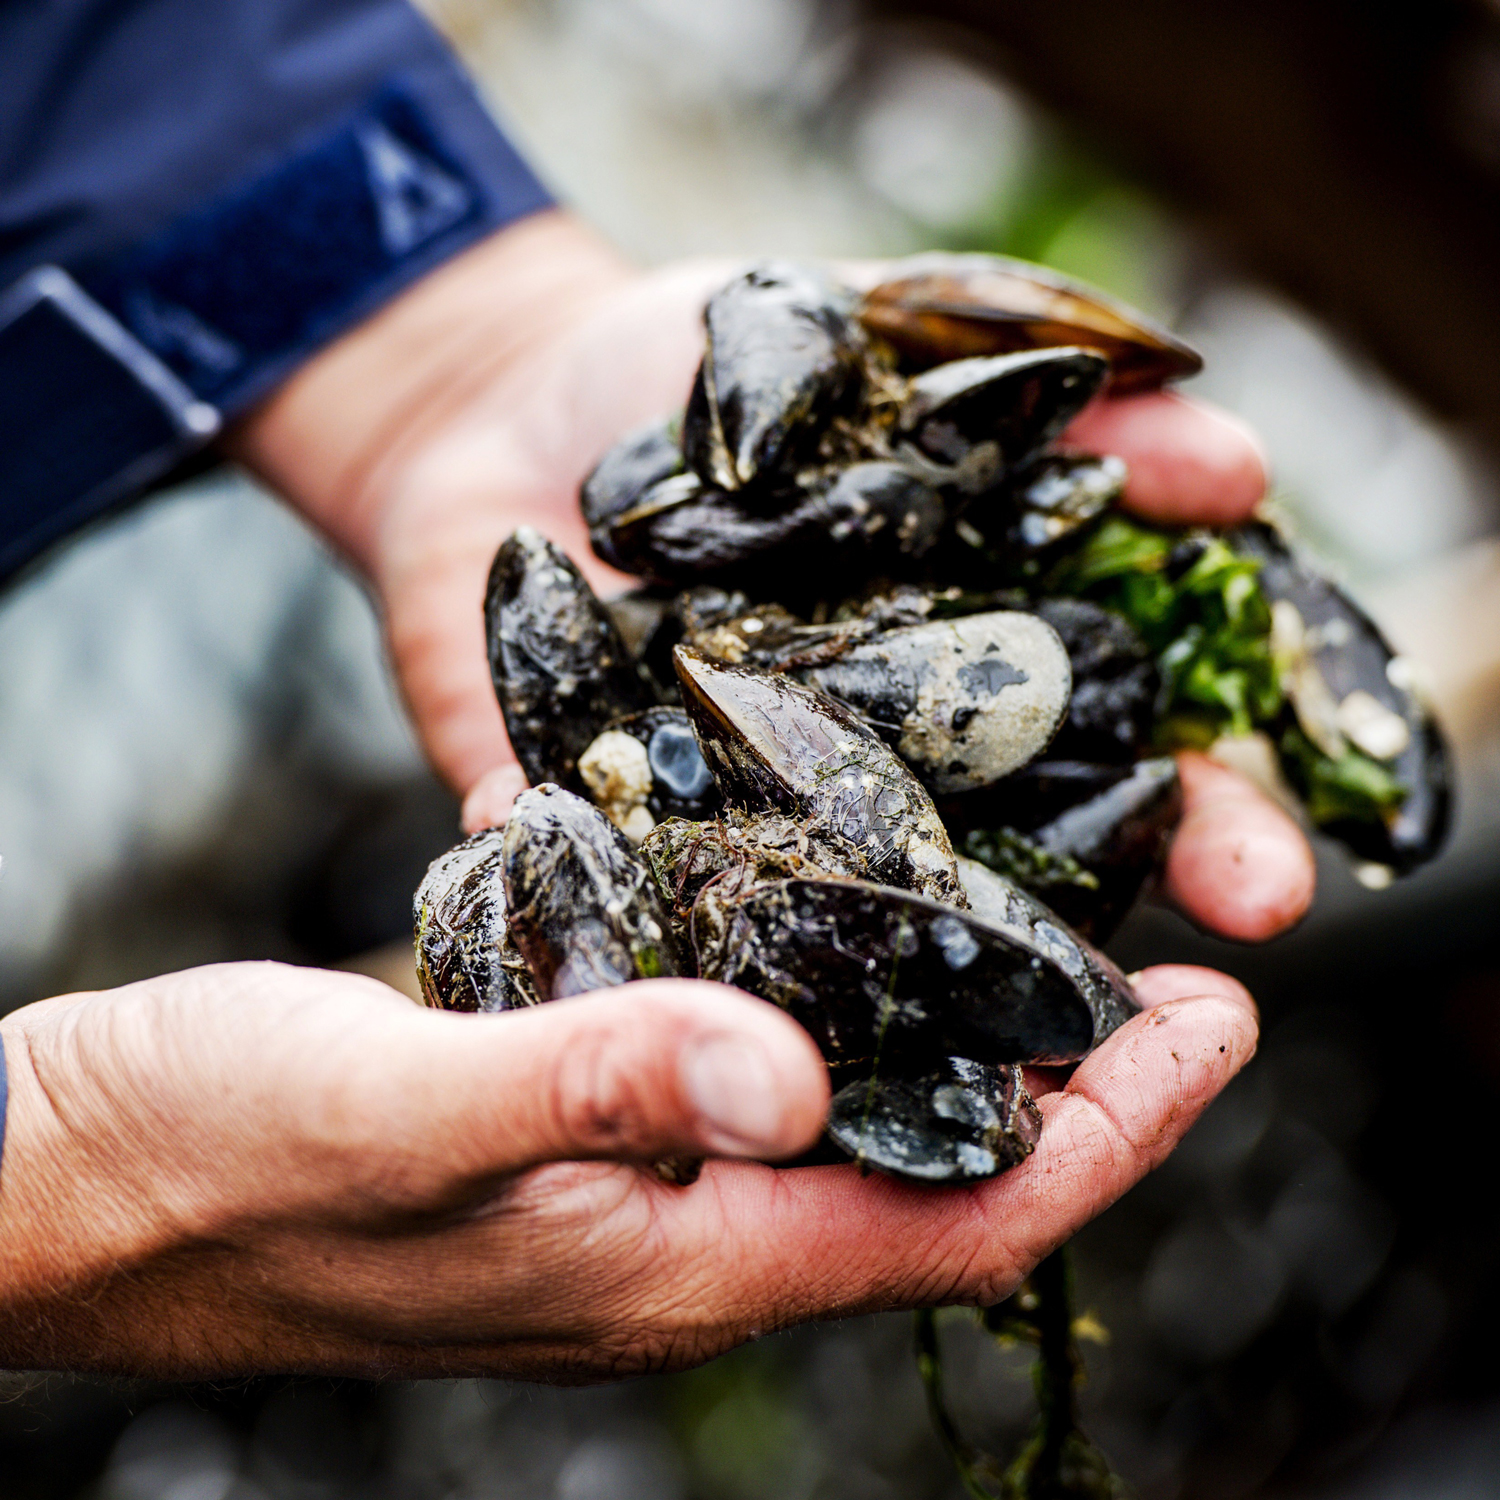 Are Mussels the New Honeybees?